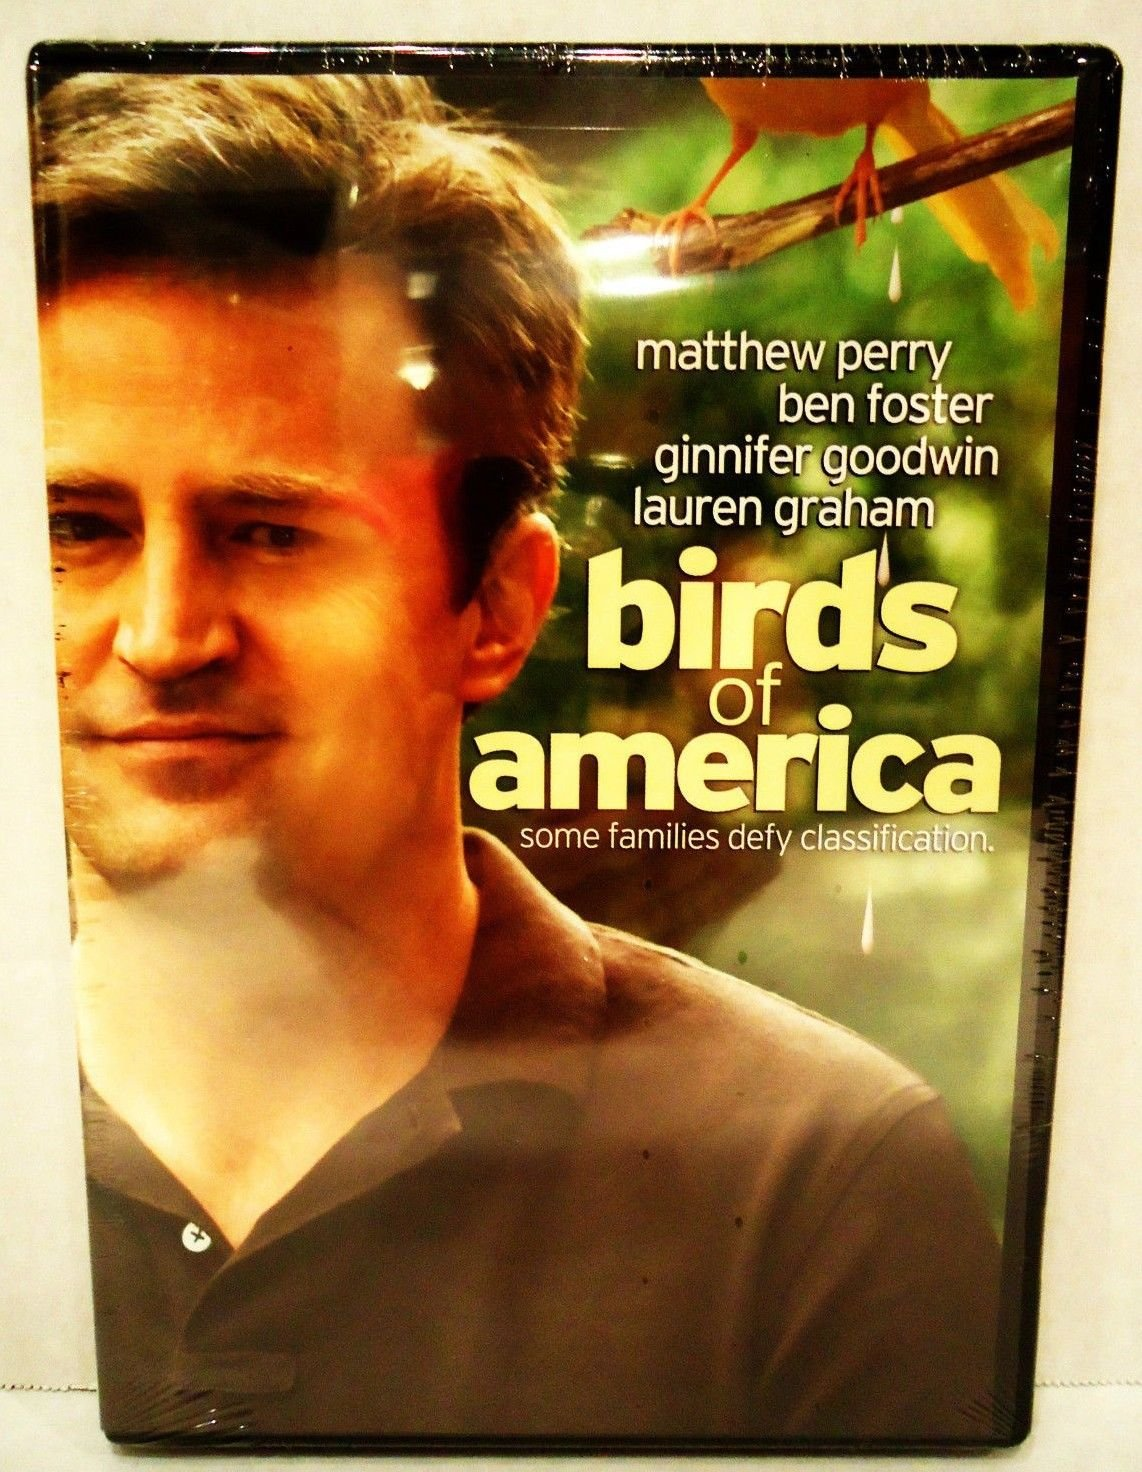 BIRDS OF AMERICA - FRIENDS - DVD - MATTHEW PERRY - NEW - SEALED - COMEDY - MOVIE